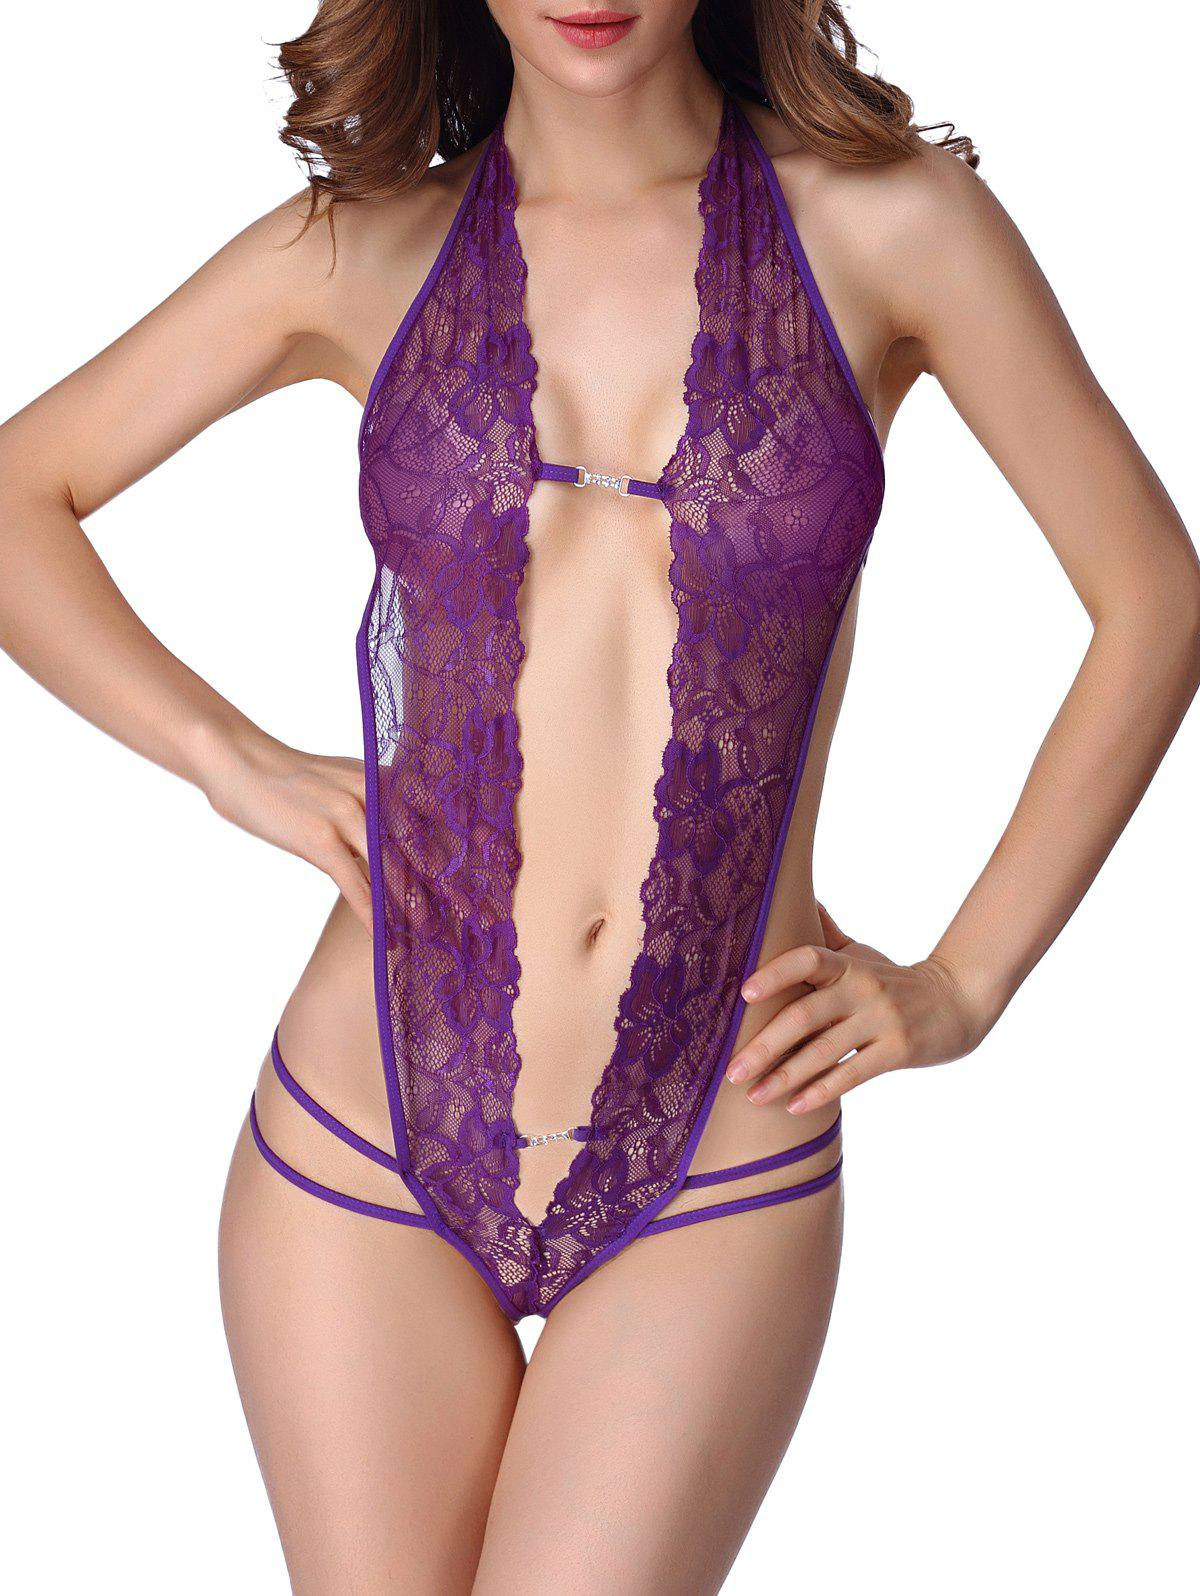 Backless Halter Cut Out Lace Teddy - PURPLE S